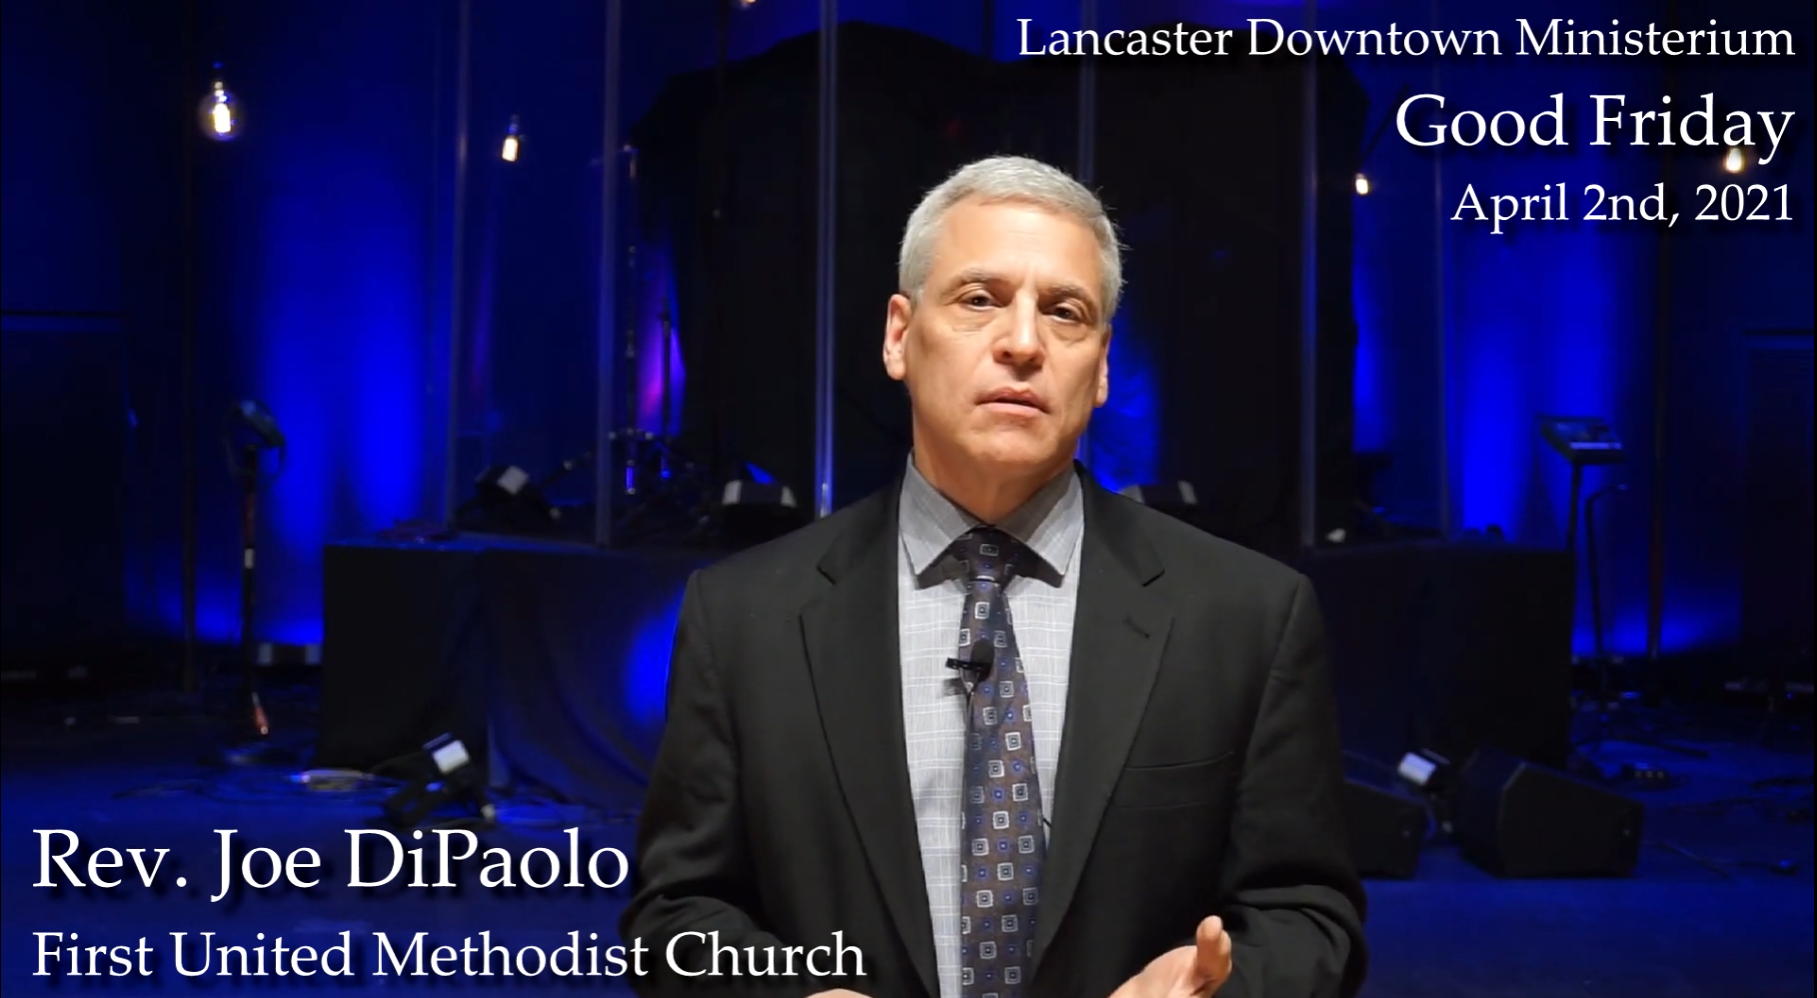 Downtown Ministerium offers virtual Good Friday service